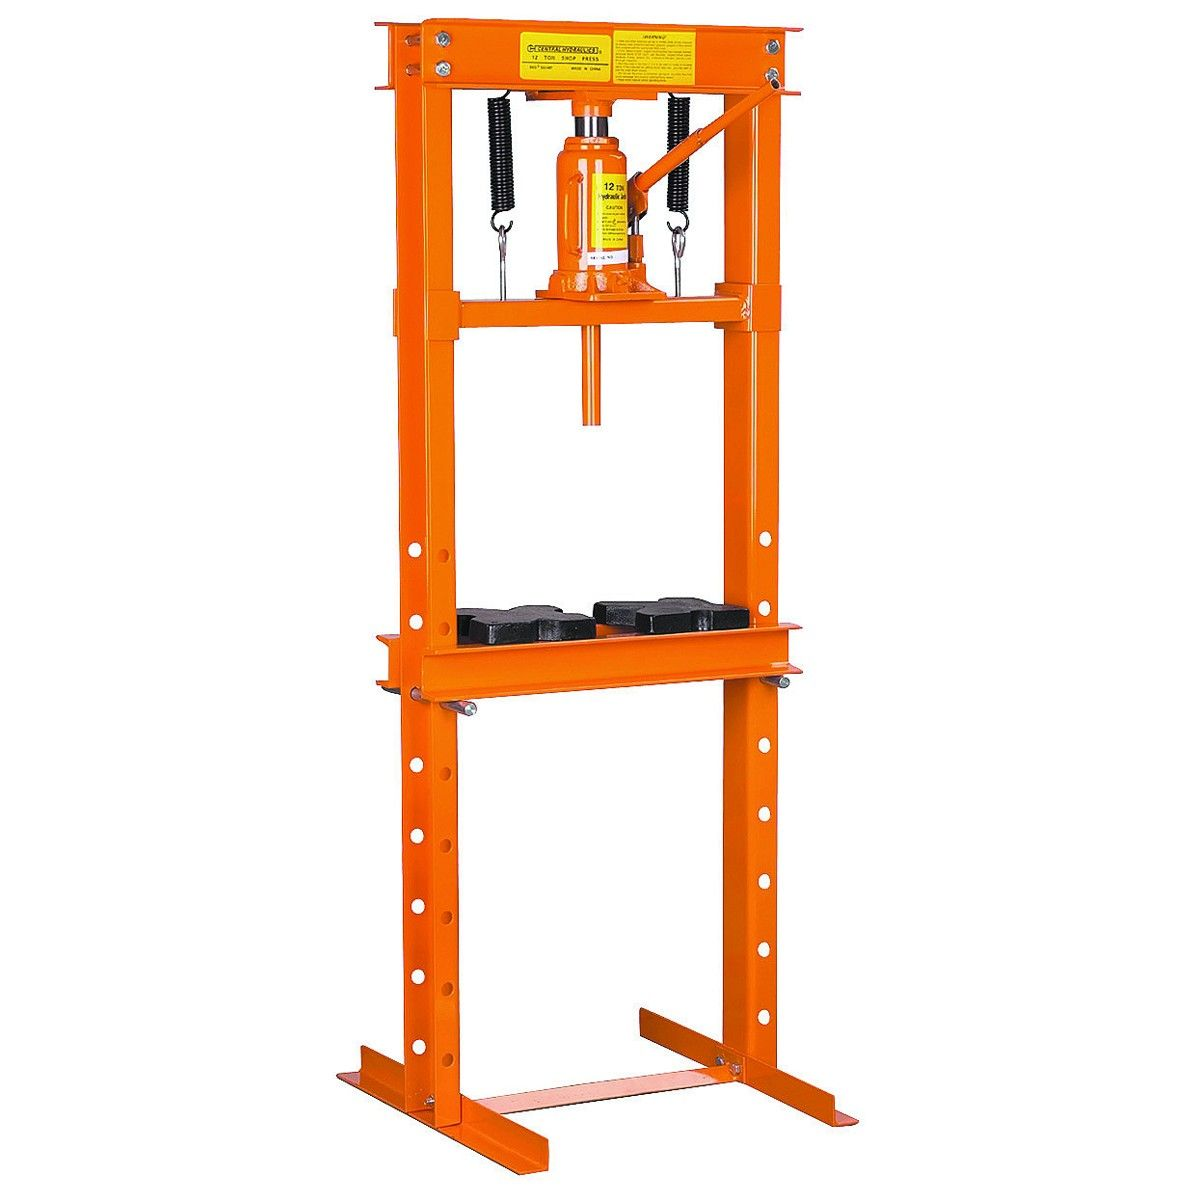 12 Ton H Frame Industrial Heavy Duty Floor Shop Press Shop Press H Frame Hydraulic Shop Press